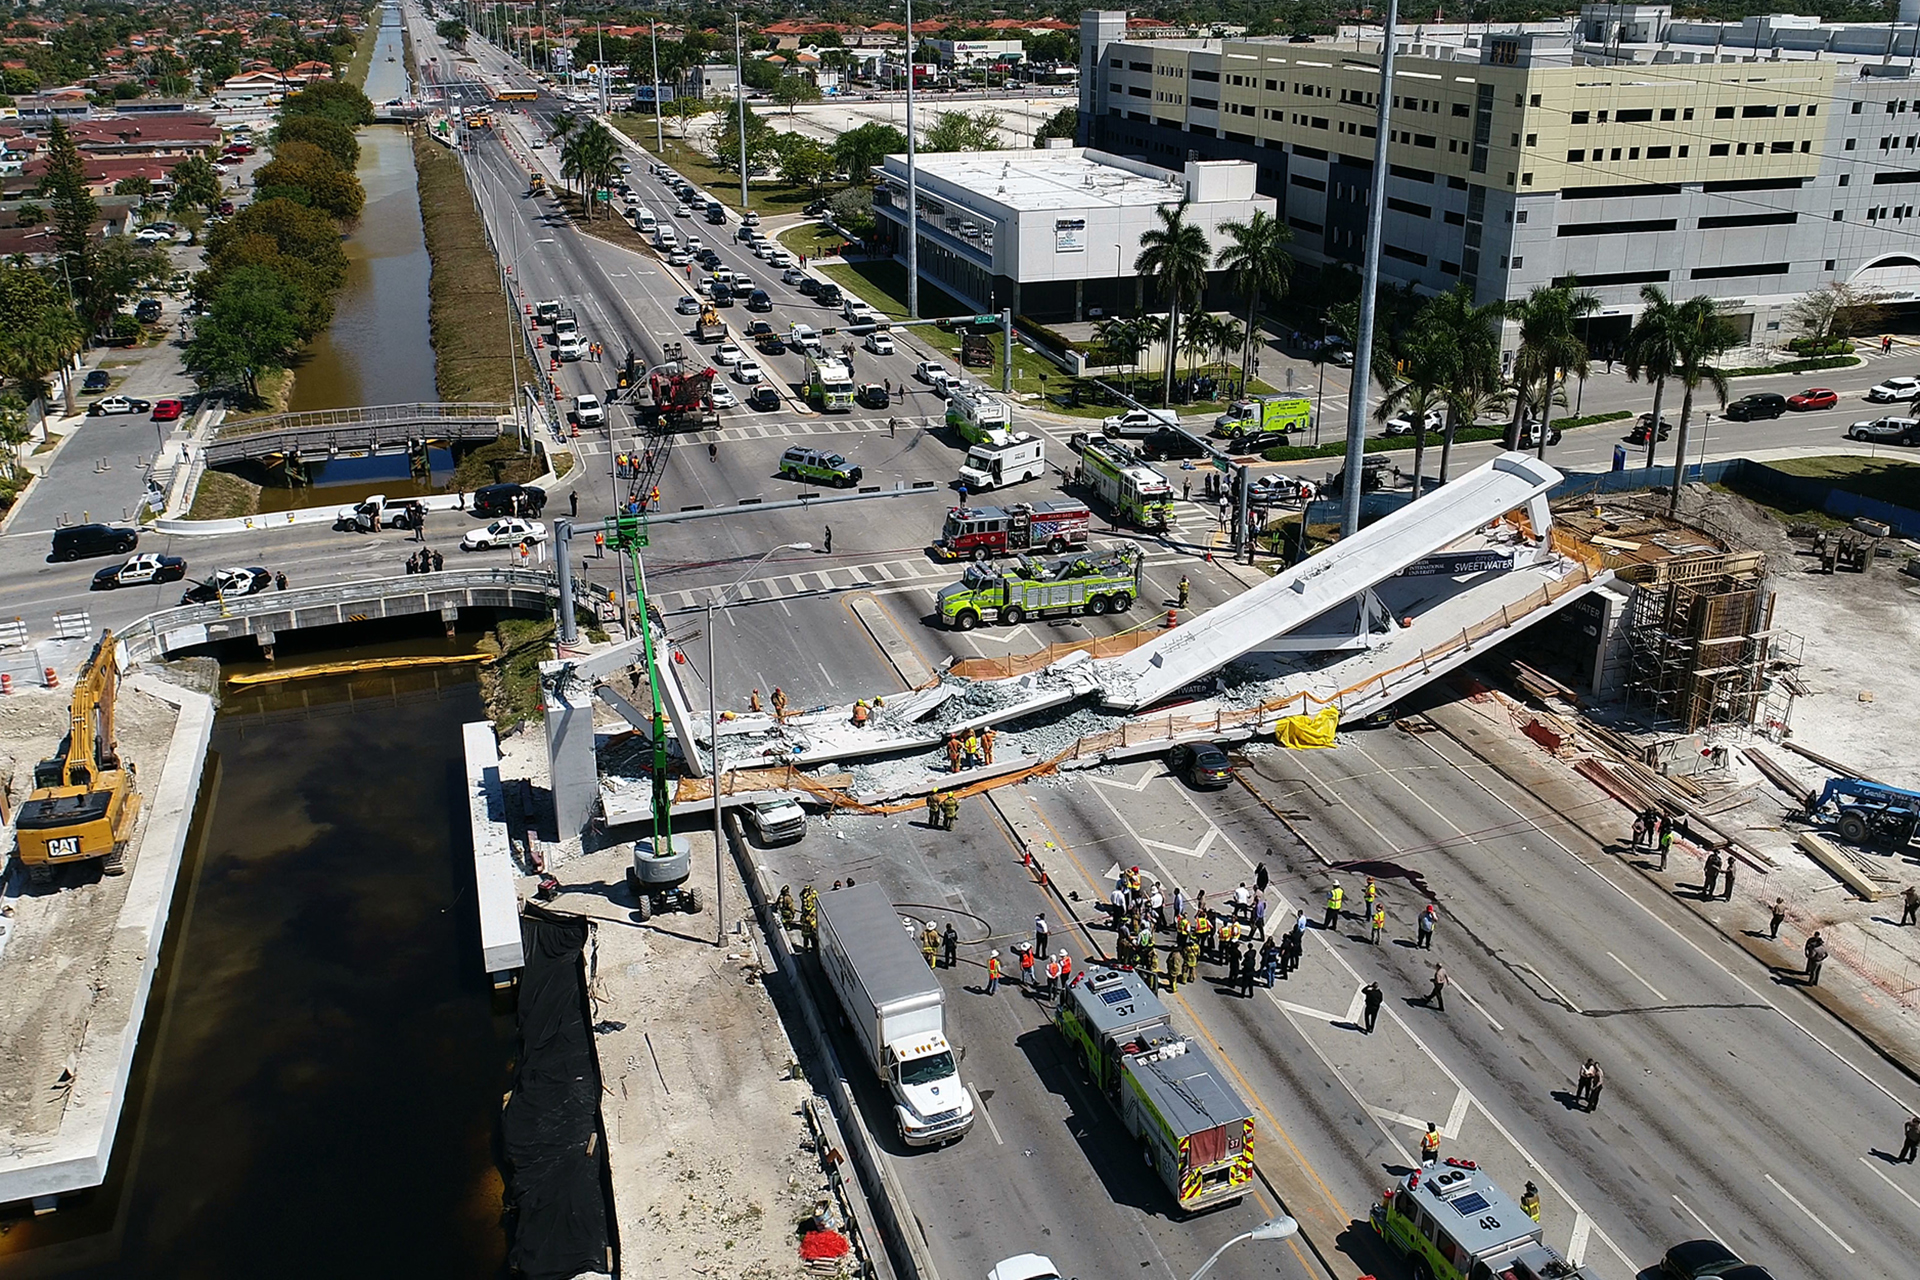 Westlake Legal Group 14_AP18074810371939 Florida bridge-collapse victims would receive up to $42M in tentative deal with bankrupt builder Lukas Mikelionis fox-news/us/us-regions/southeast/florida fox-news/us/disasters fox news fnc/us fnc ca5a8ce9-a589-559f-8991-db82ac385bf6 article